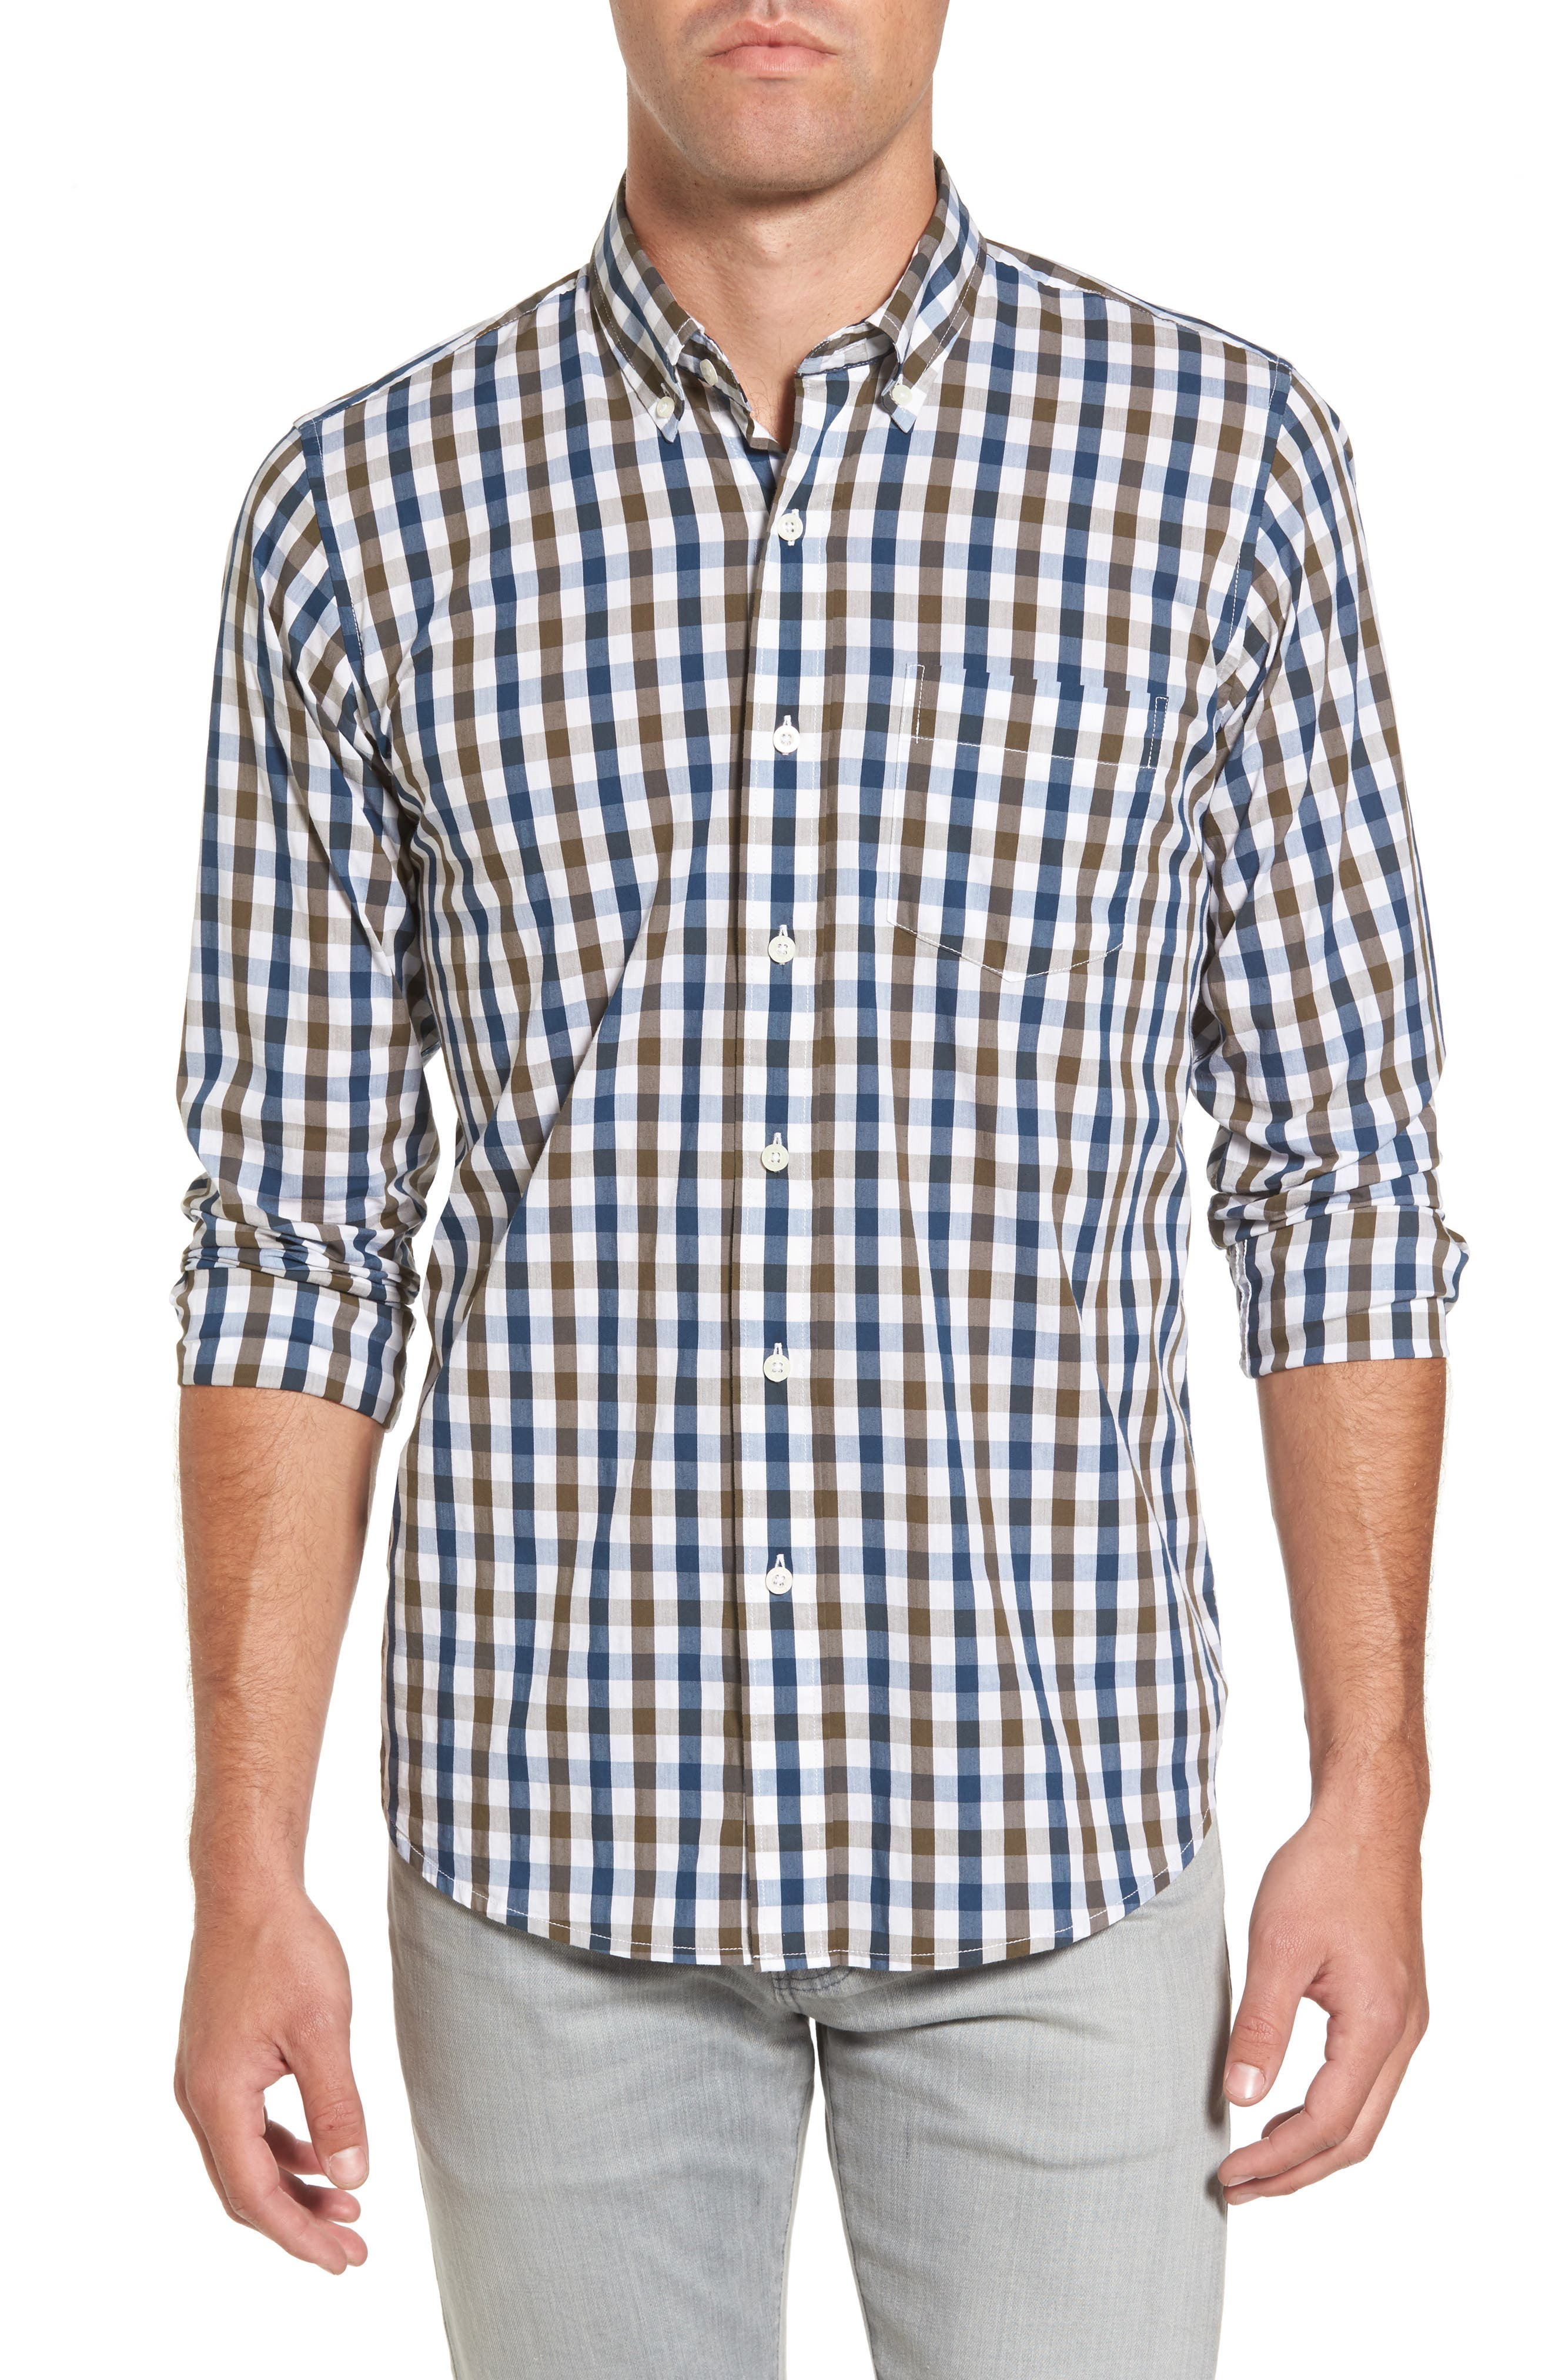 Regular Fit Performance Sport Shirt,                         Main,                         color, Teal/ Army Tricolor Gingham